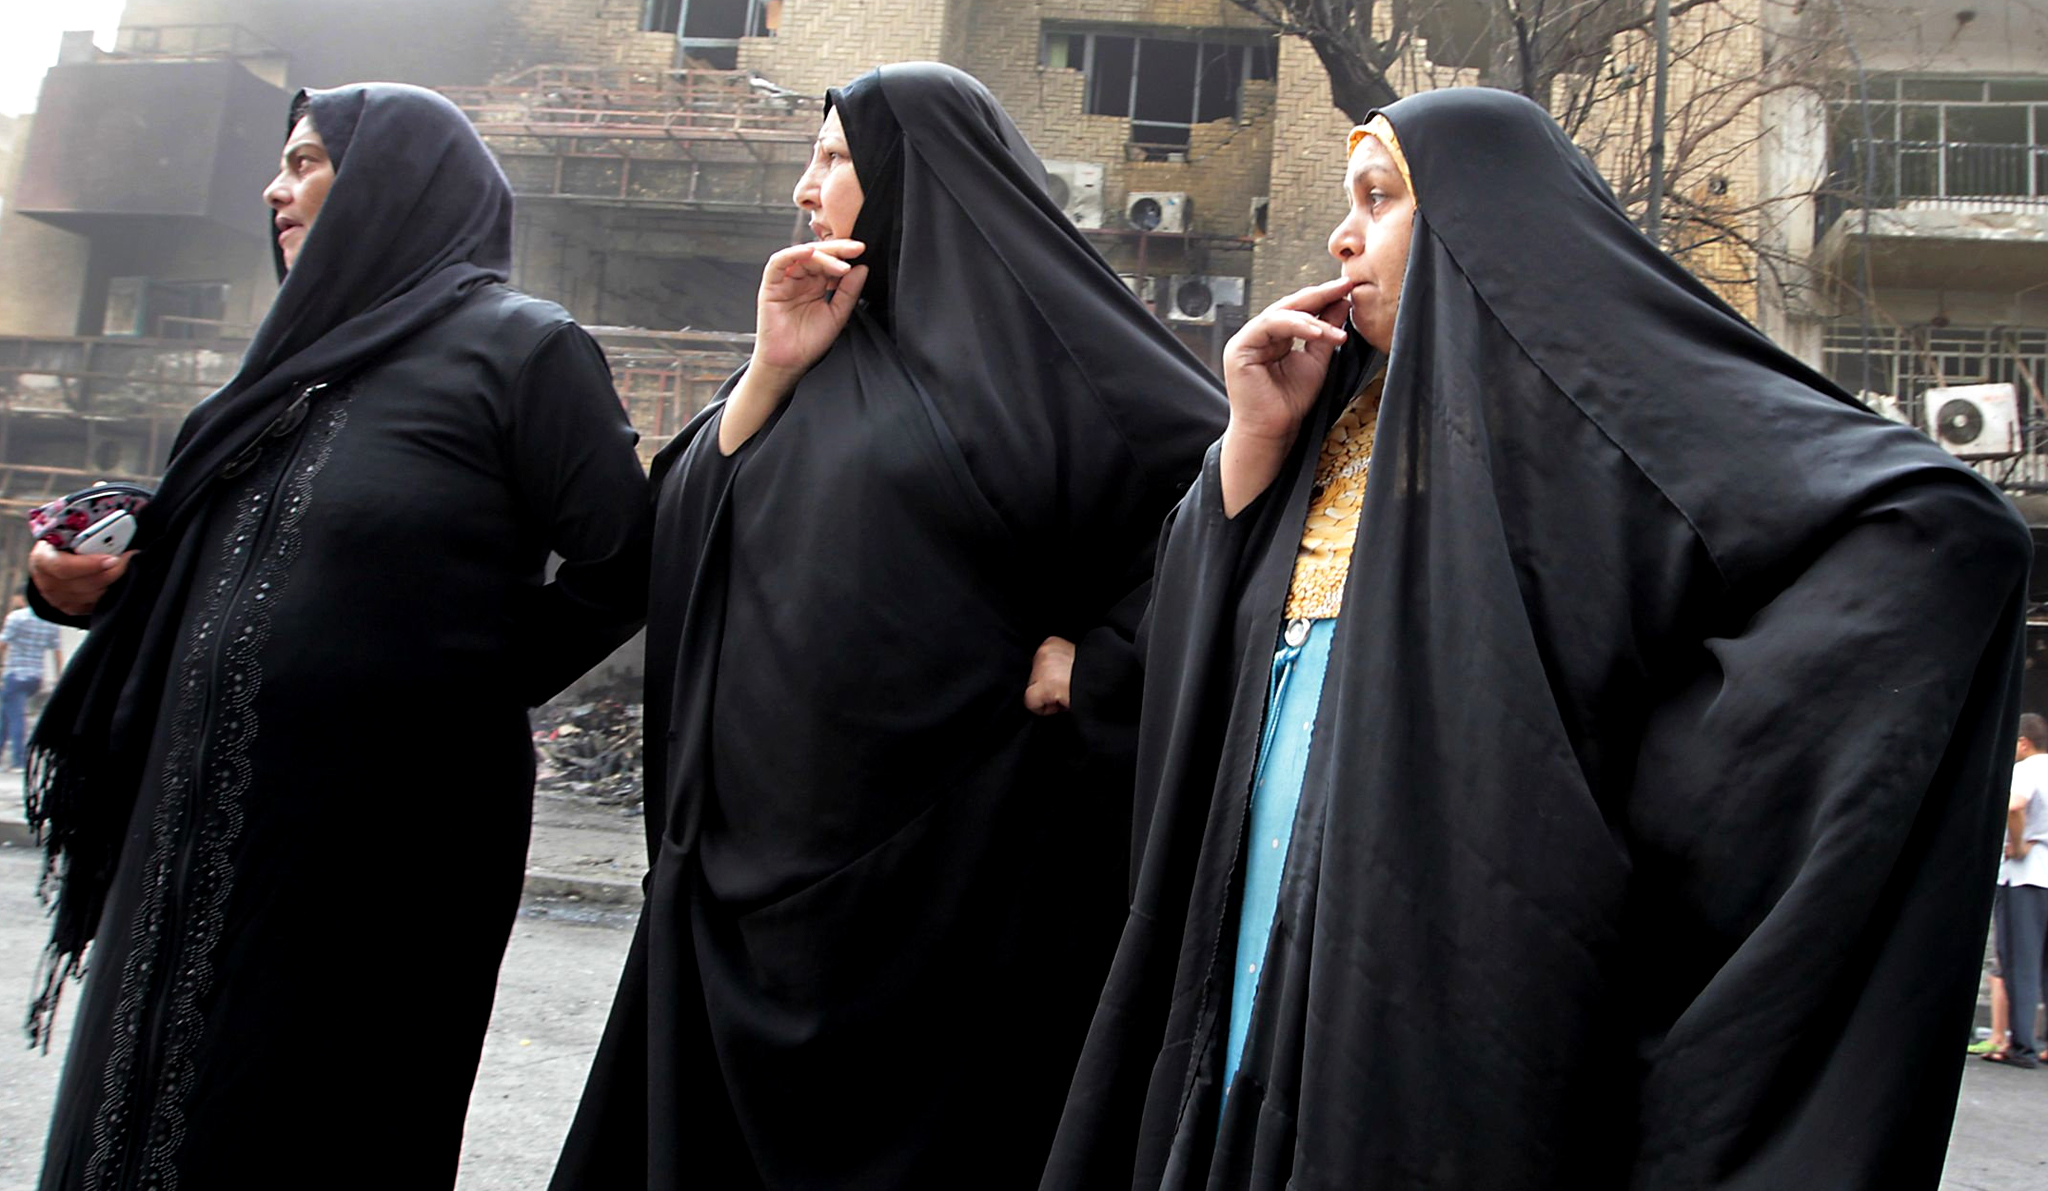 Iraqis react as they visit the aftermath of a massive bombing in Baghdad's Karrada neighbourhood on July 4, 2016.  Iraqis mourned the more than 200 people killed by a jihadist-claimed suicide car bombing that was among the deadliest ever attacks in the country. The blast, which the Islamic State group said it carried out, hit the Karrada district early on July 3 as the area was packed with shoppers ahead of this week's holiday marking the end of the Muslim fasting month of Ramadan.   / AFP PHOTO / SABAH ARARSABAH ARAR/AFP/Getty Images